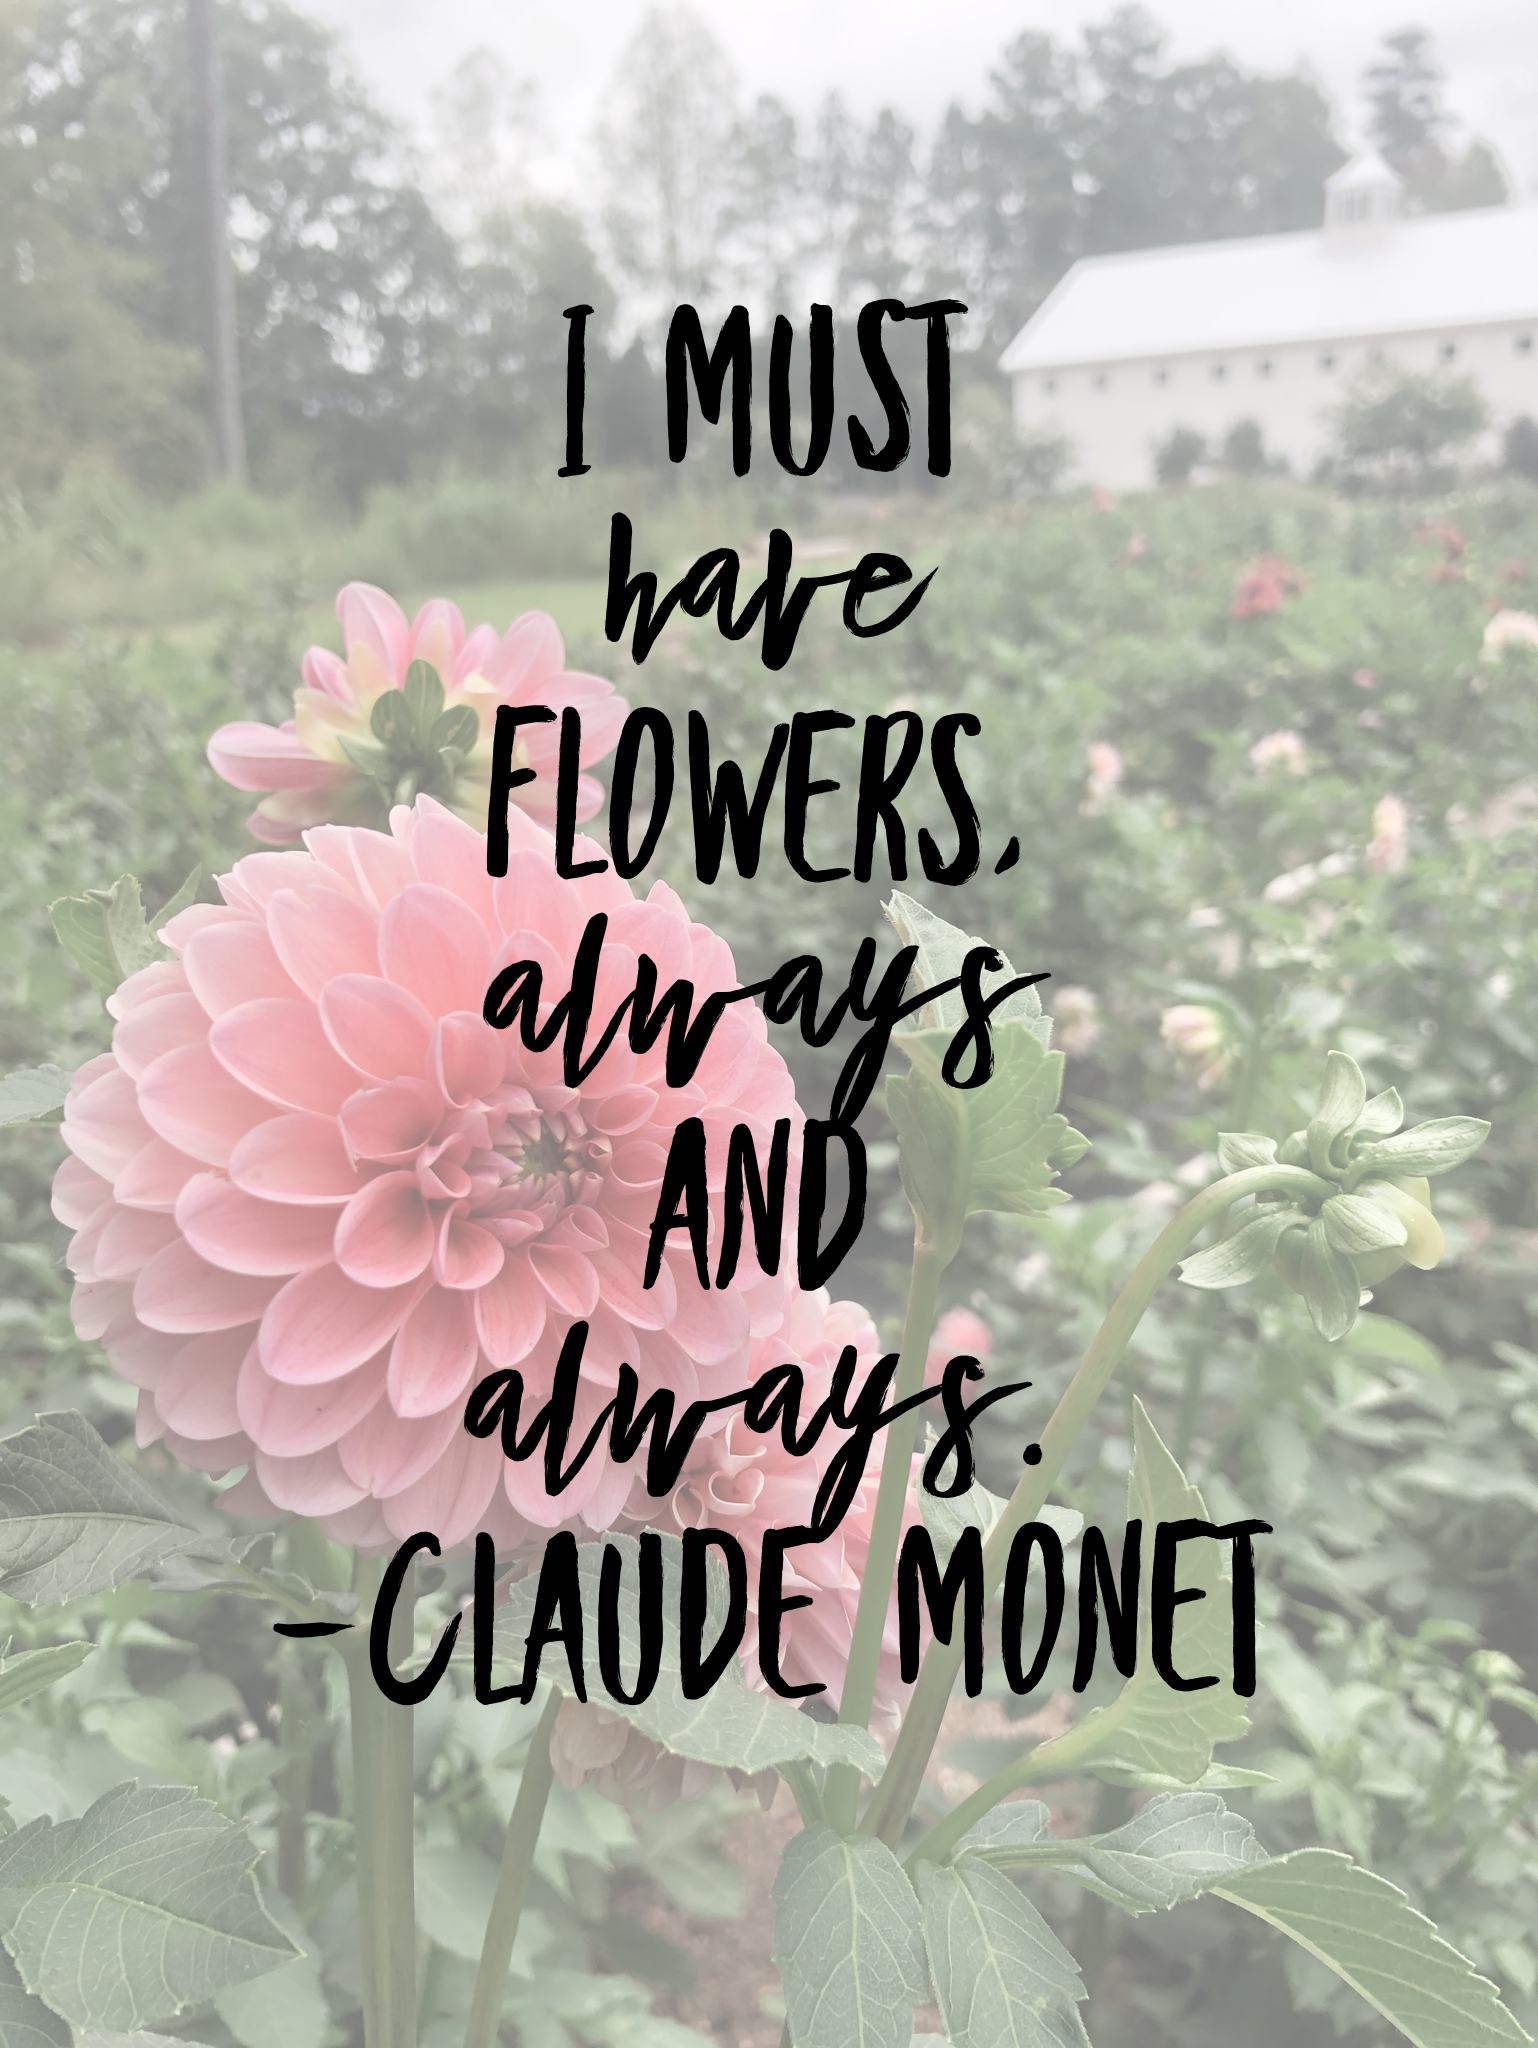 I_must_have_flowers_always_and_always_quote.PNG